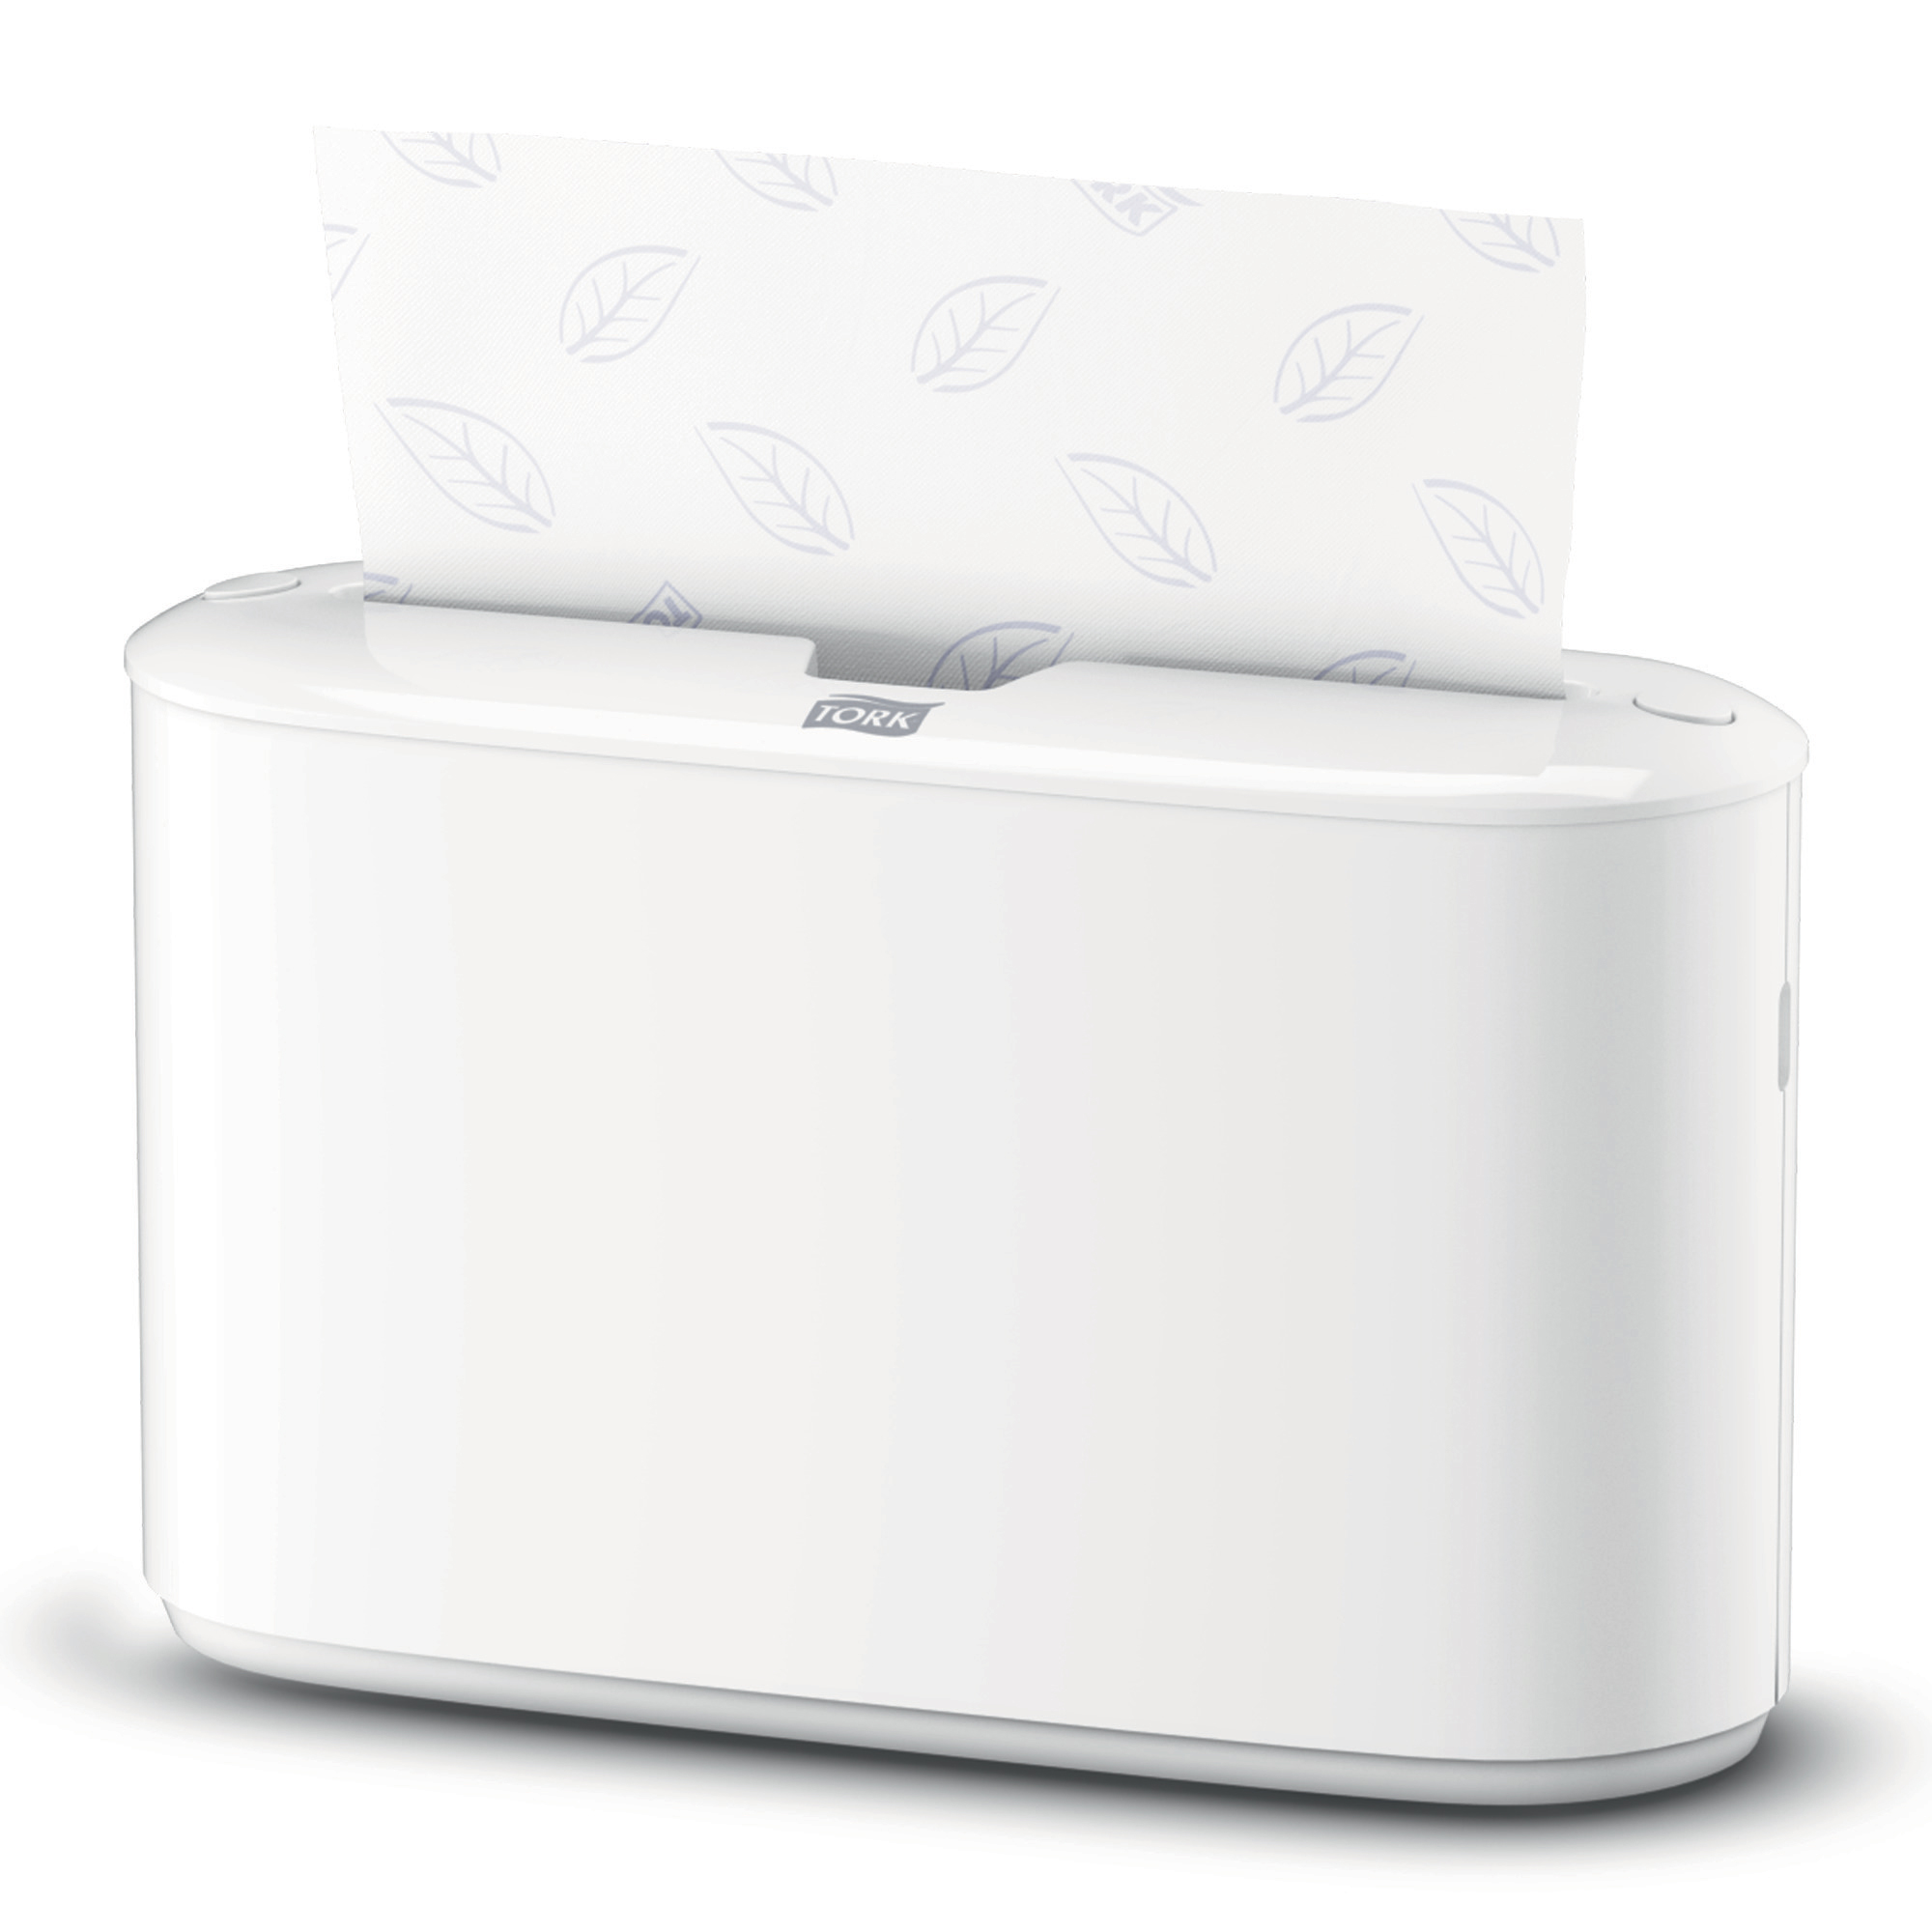 Tork Xpress Countertop Multifold Hand Towel Dispenser W323xD116xH218mm Plastic White Ref 552200